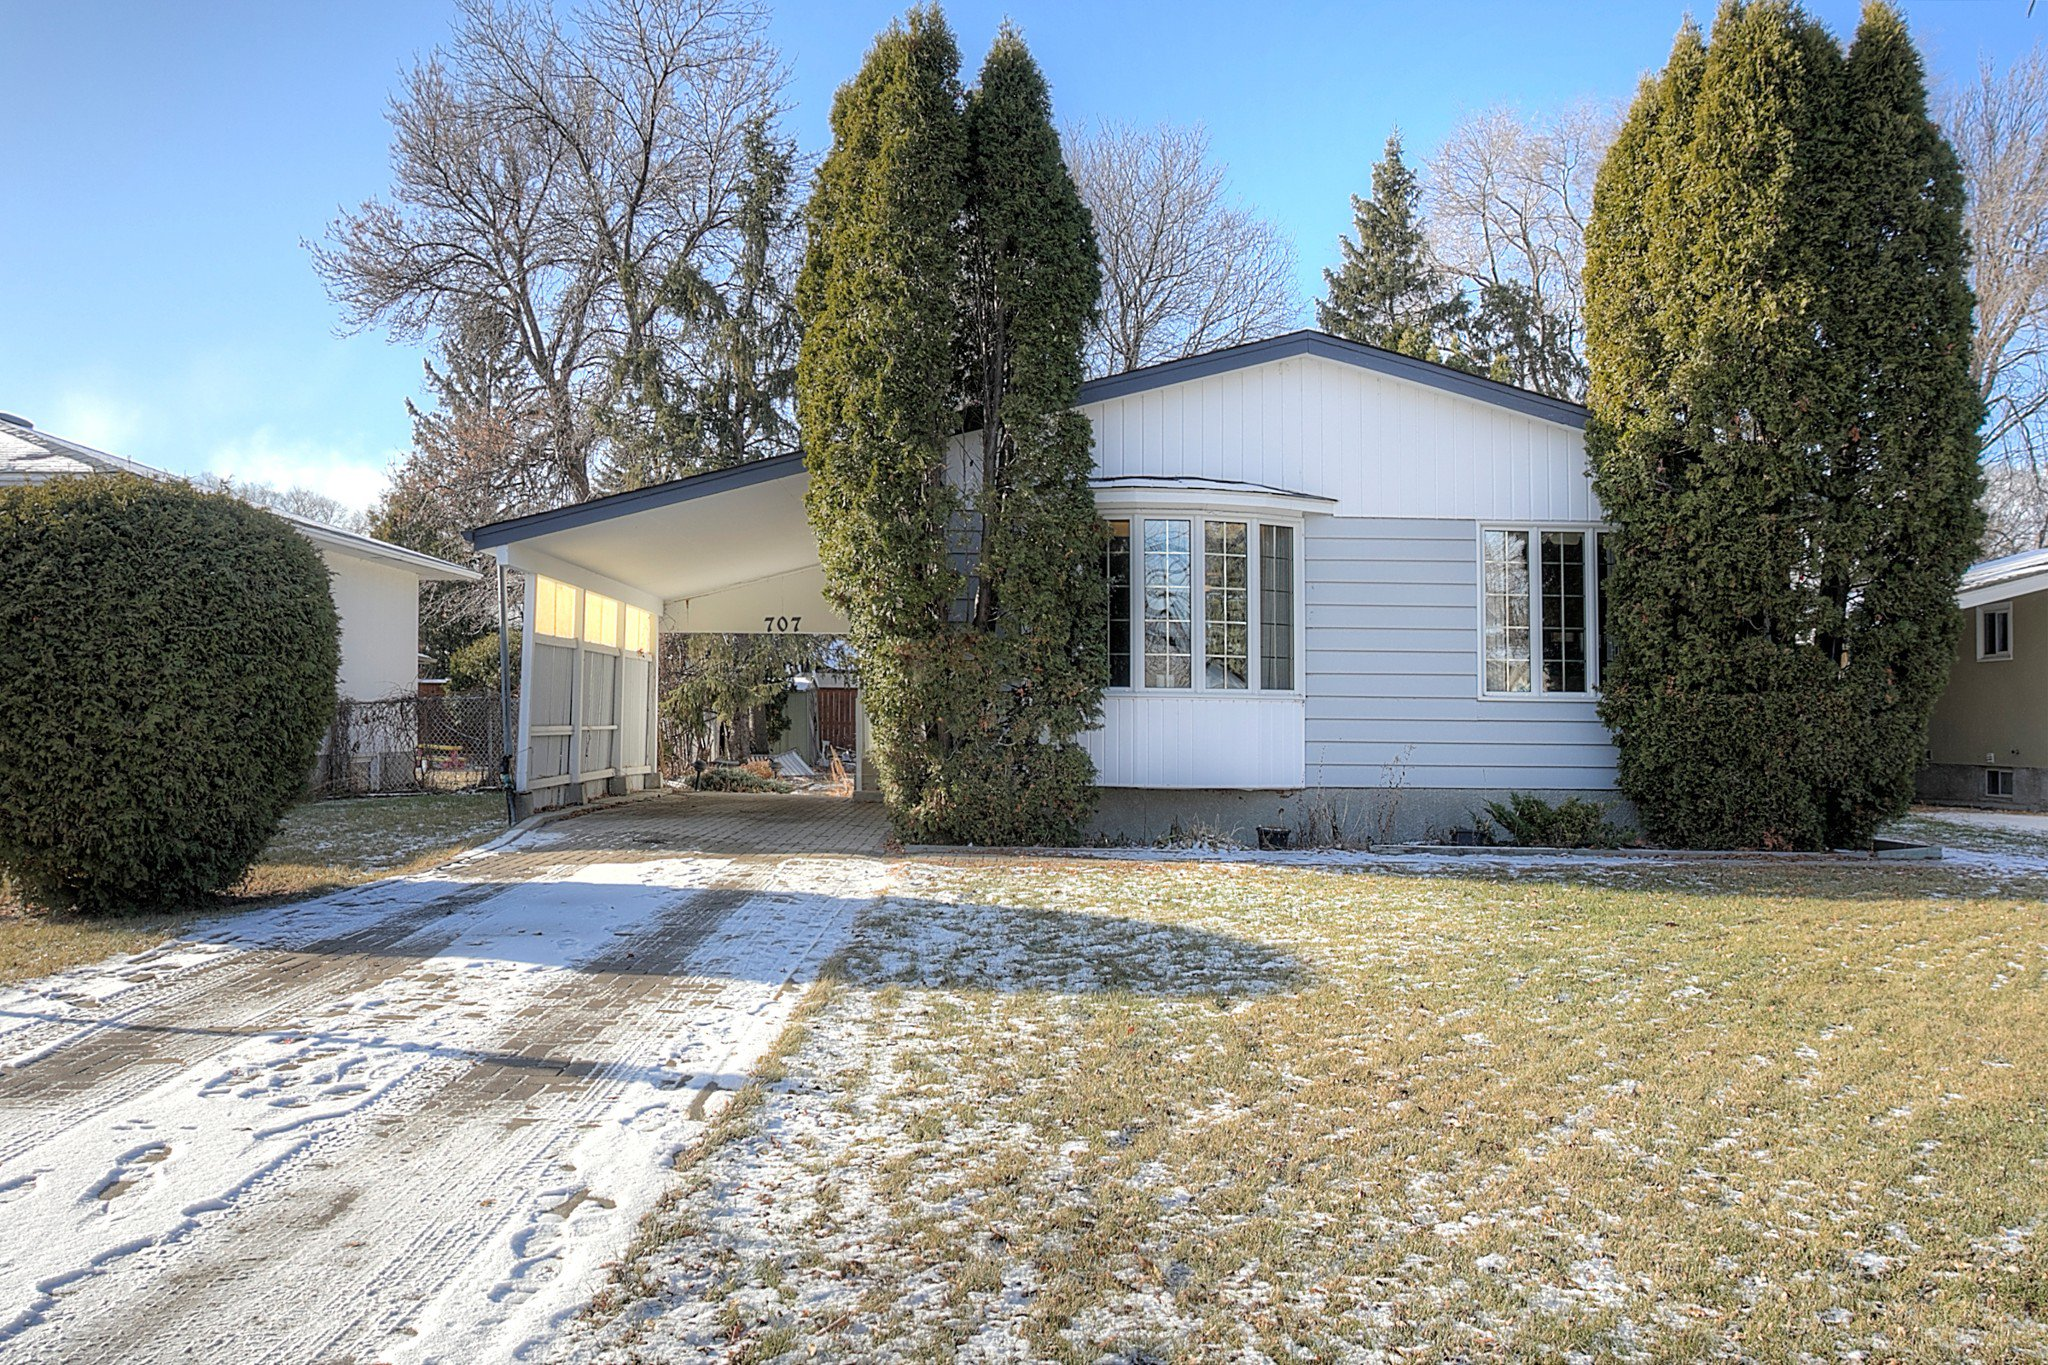 Main Photo: 707 Grierson Avenue in Winnipeg: Fort Richmond Single Family Detached for sale (1K)  : MLS®# 202028093